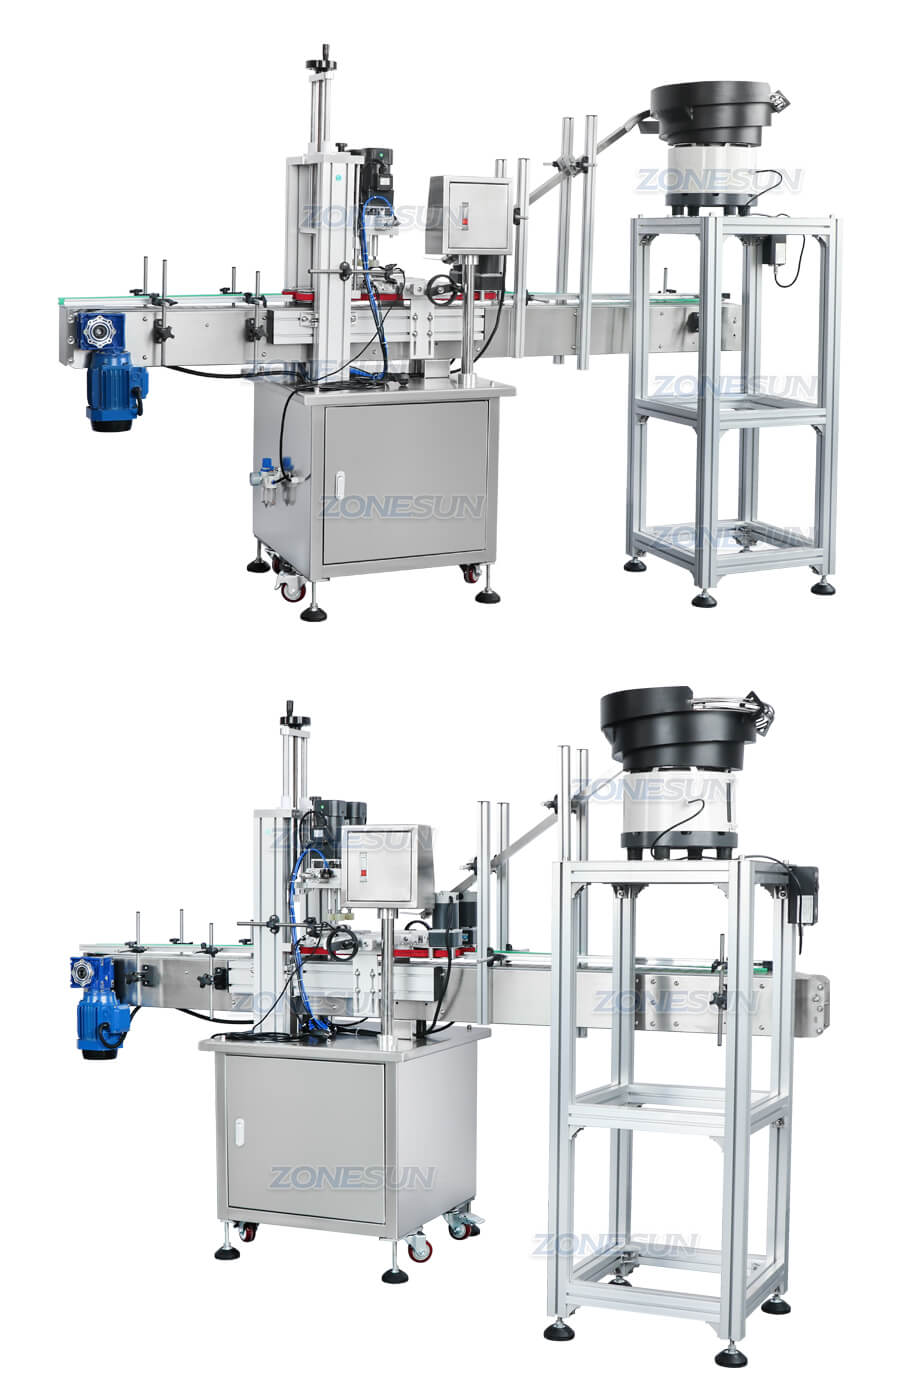 ZS-XG16 Automatic Bottle Capping Machine With Cap Feeder